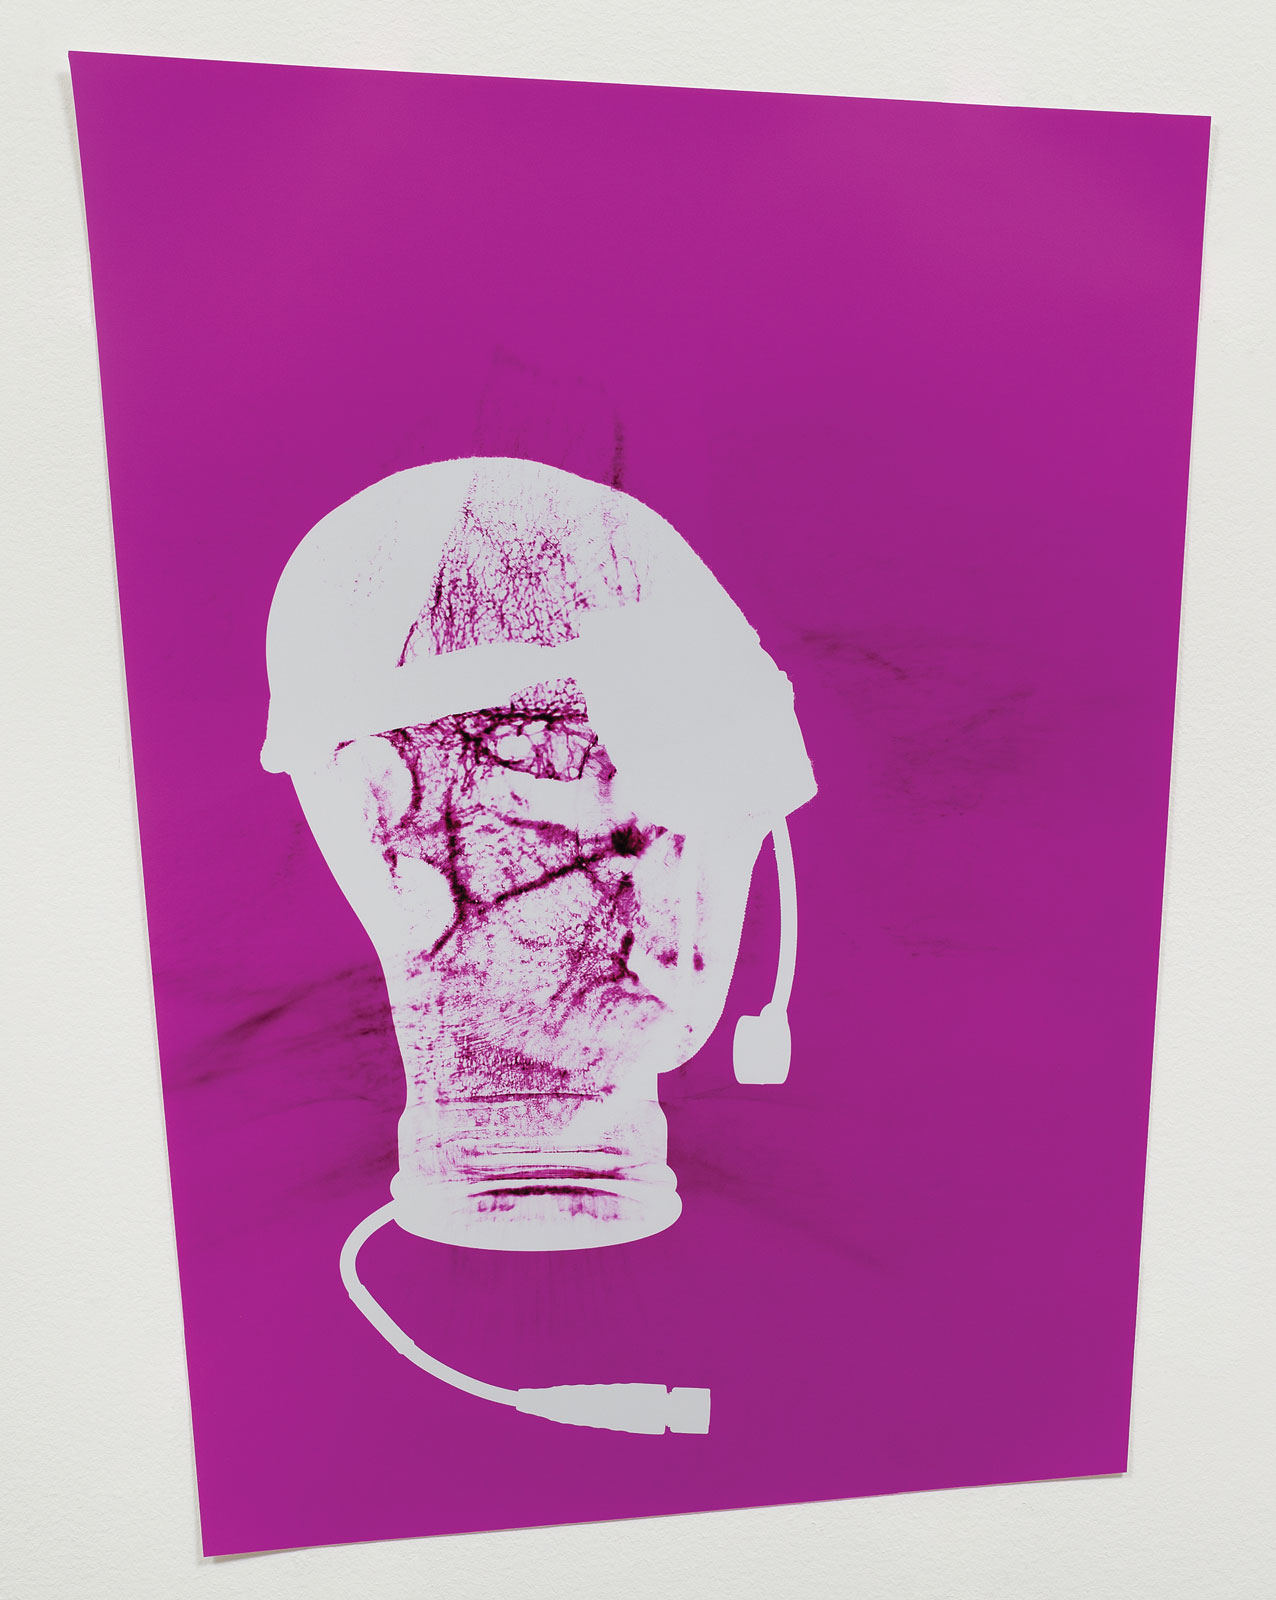 <i>Combat Gear: Talking Heads</i> (2013). 27 5/8˝ × 42 1/4˝ (framed), unique chromogenic photogram from headsets.